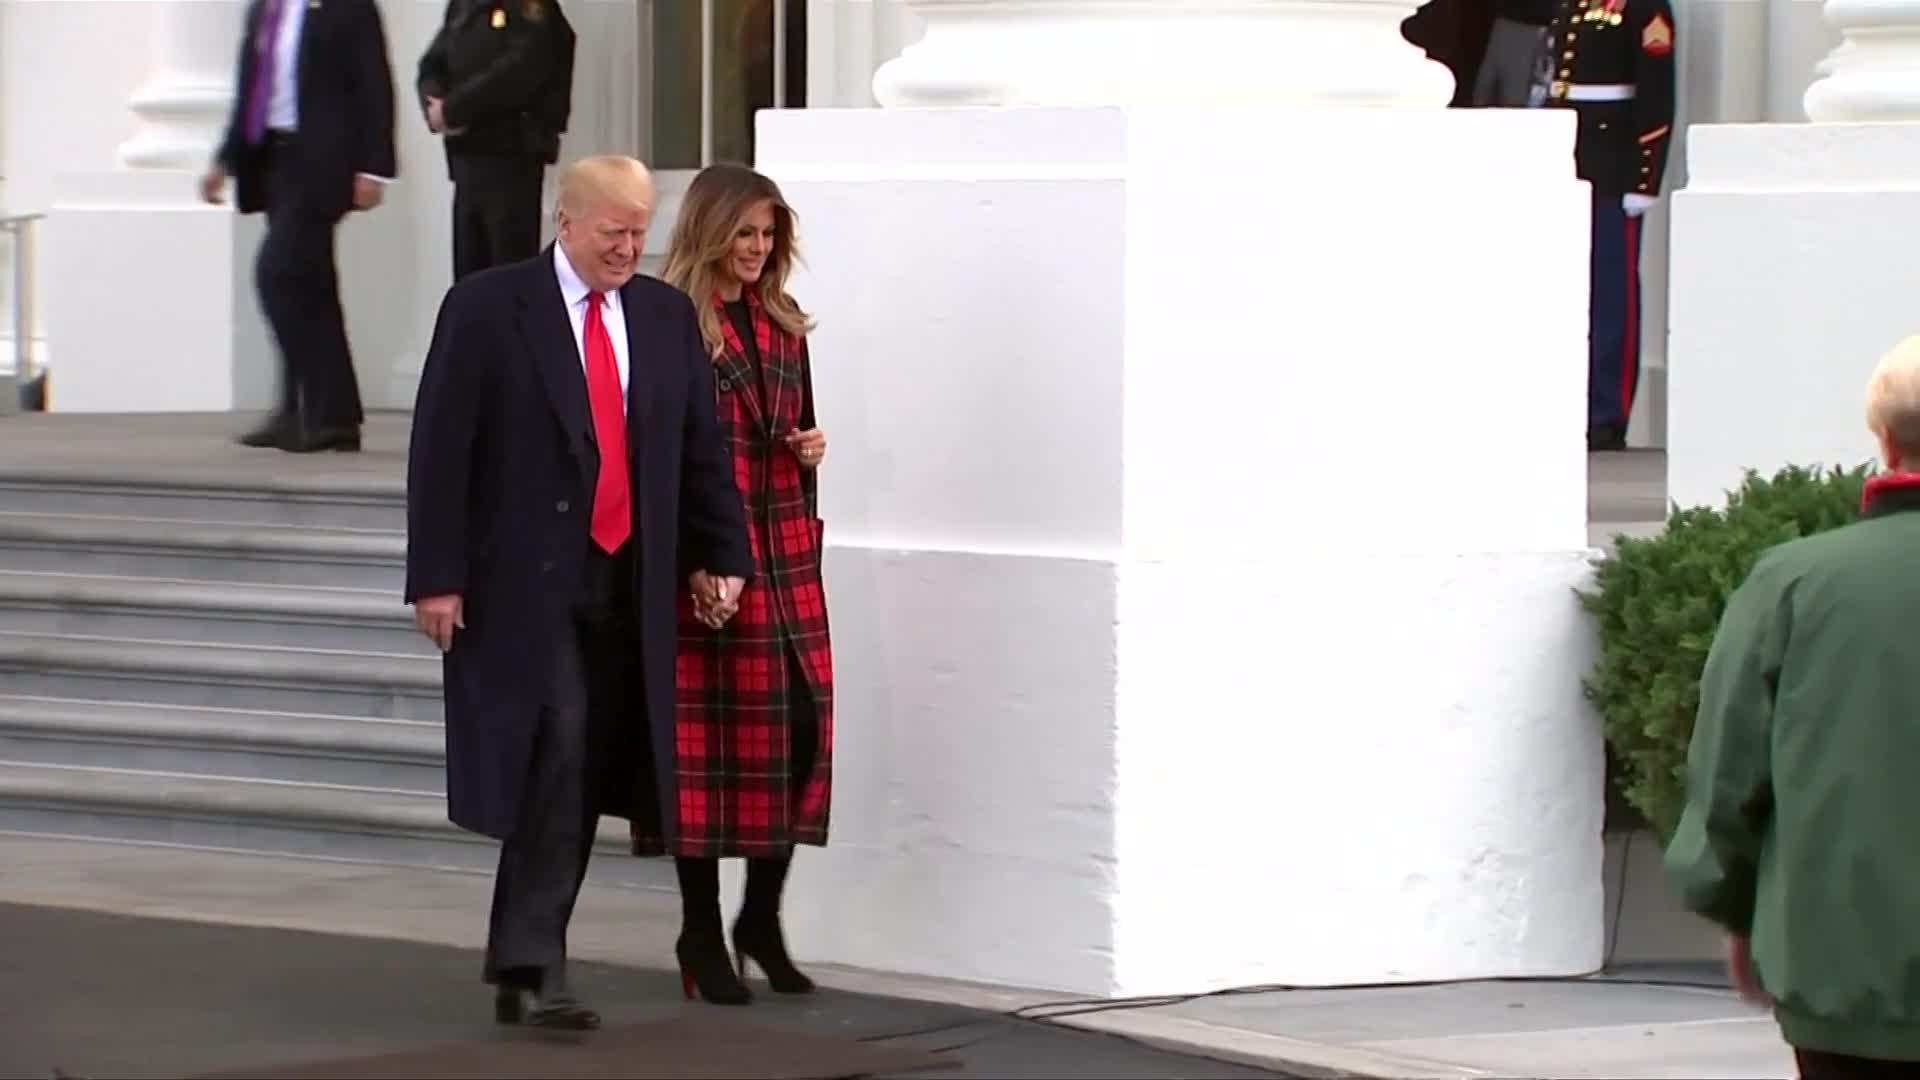 Twitter Users React To Trump Touching Horse's Butt As White House Christmas Tree Arrives